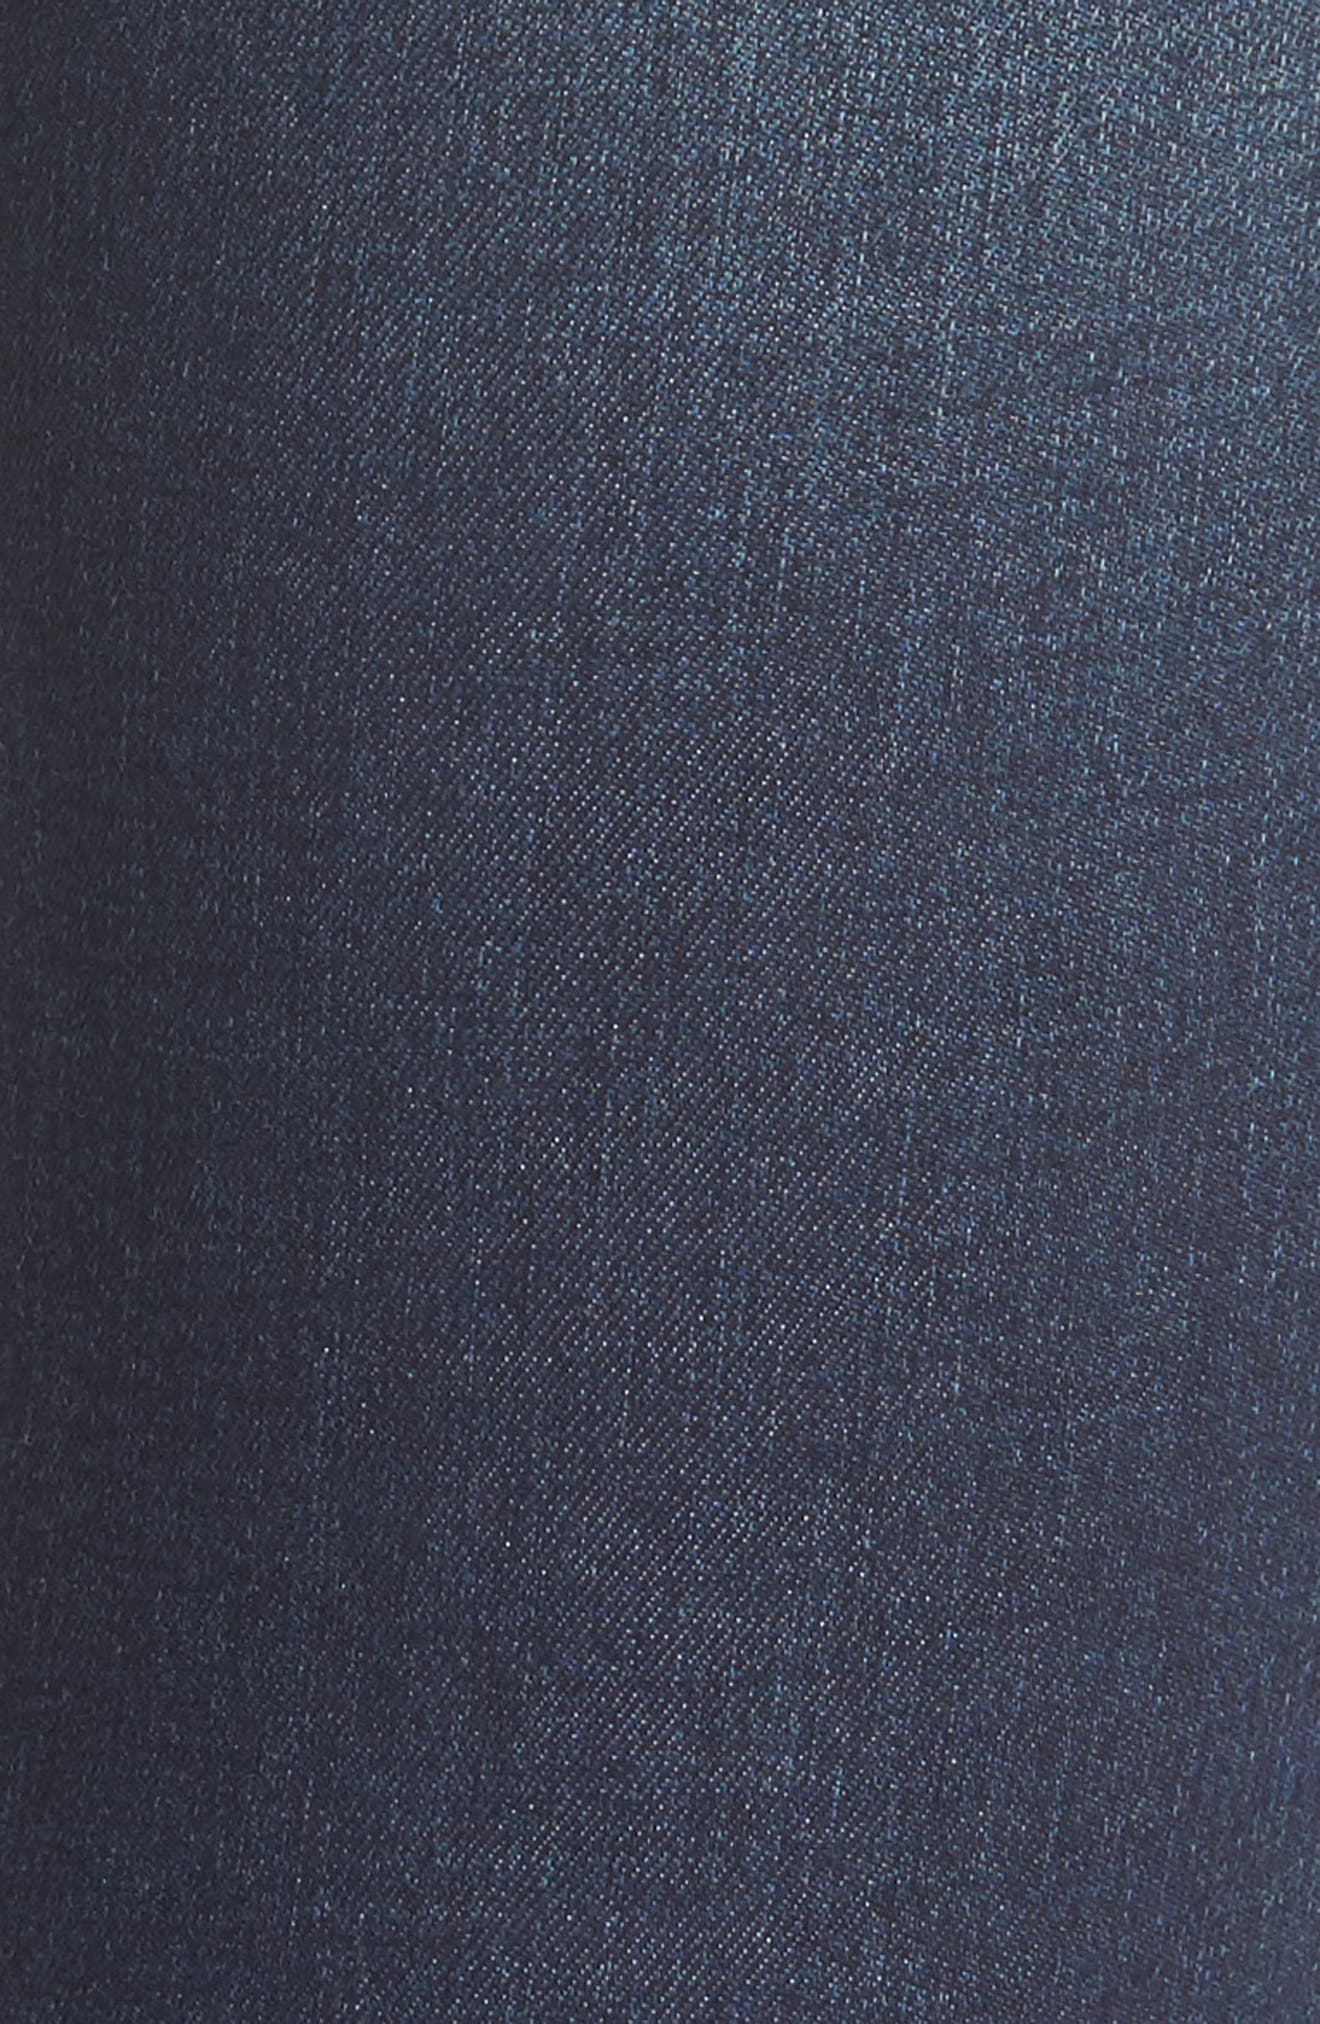 Melody Skinny Jeans,                             Alternate thumbnail 6, color,                             491